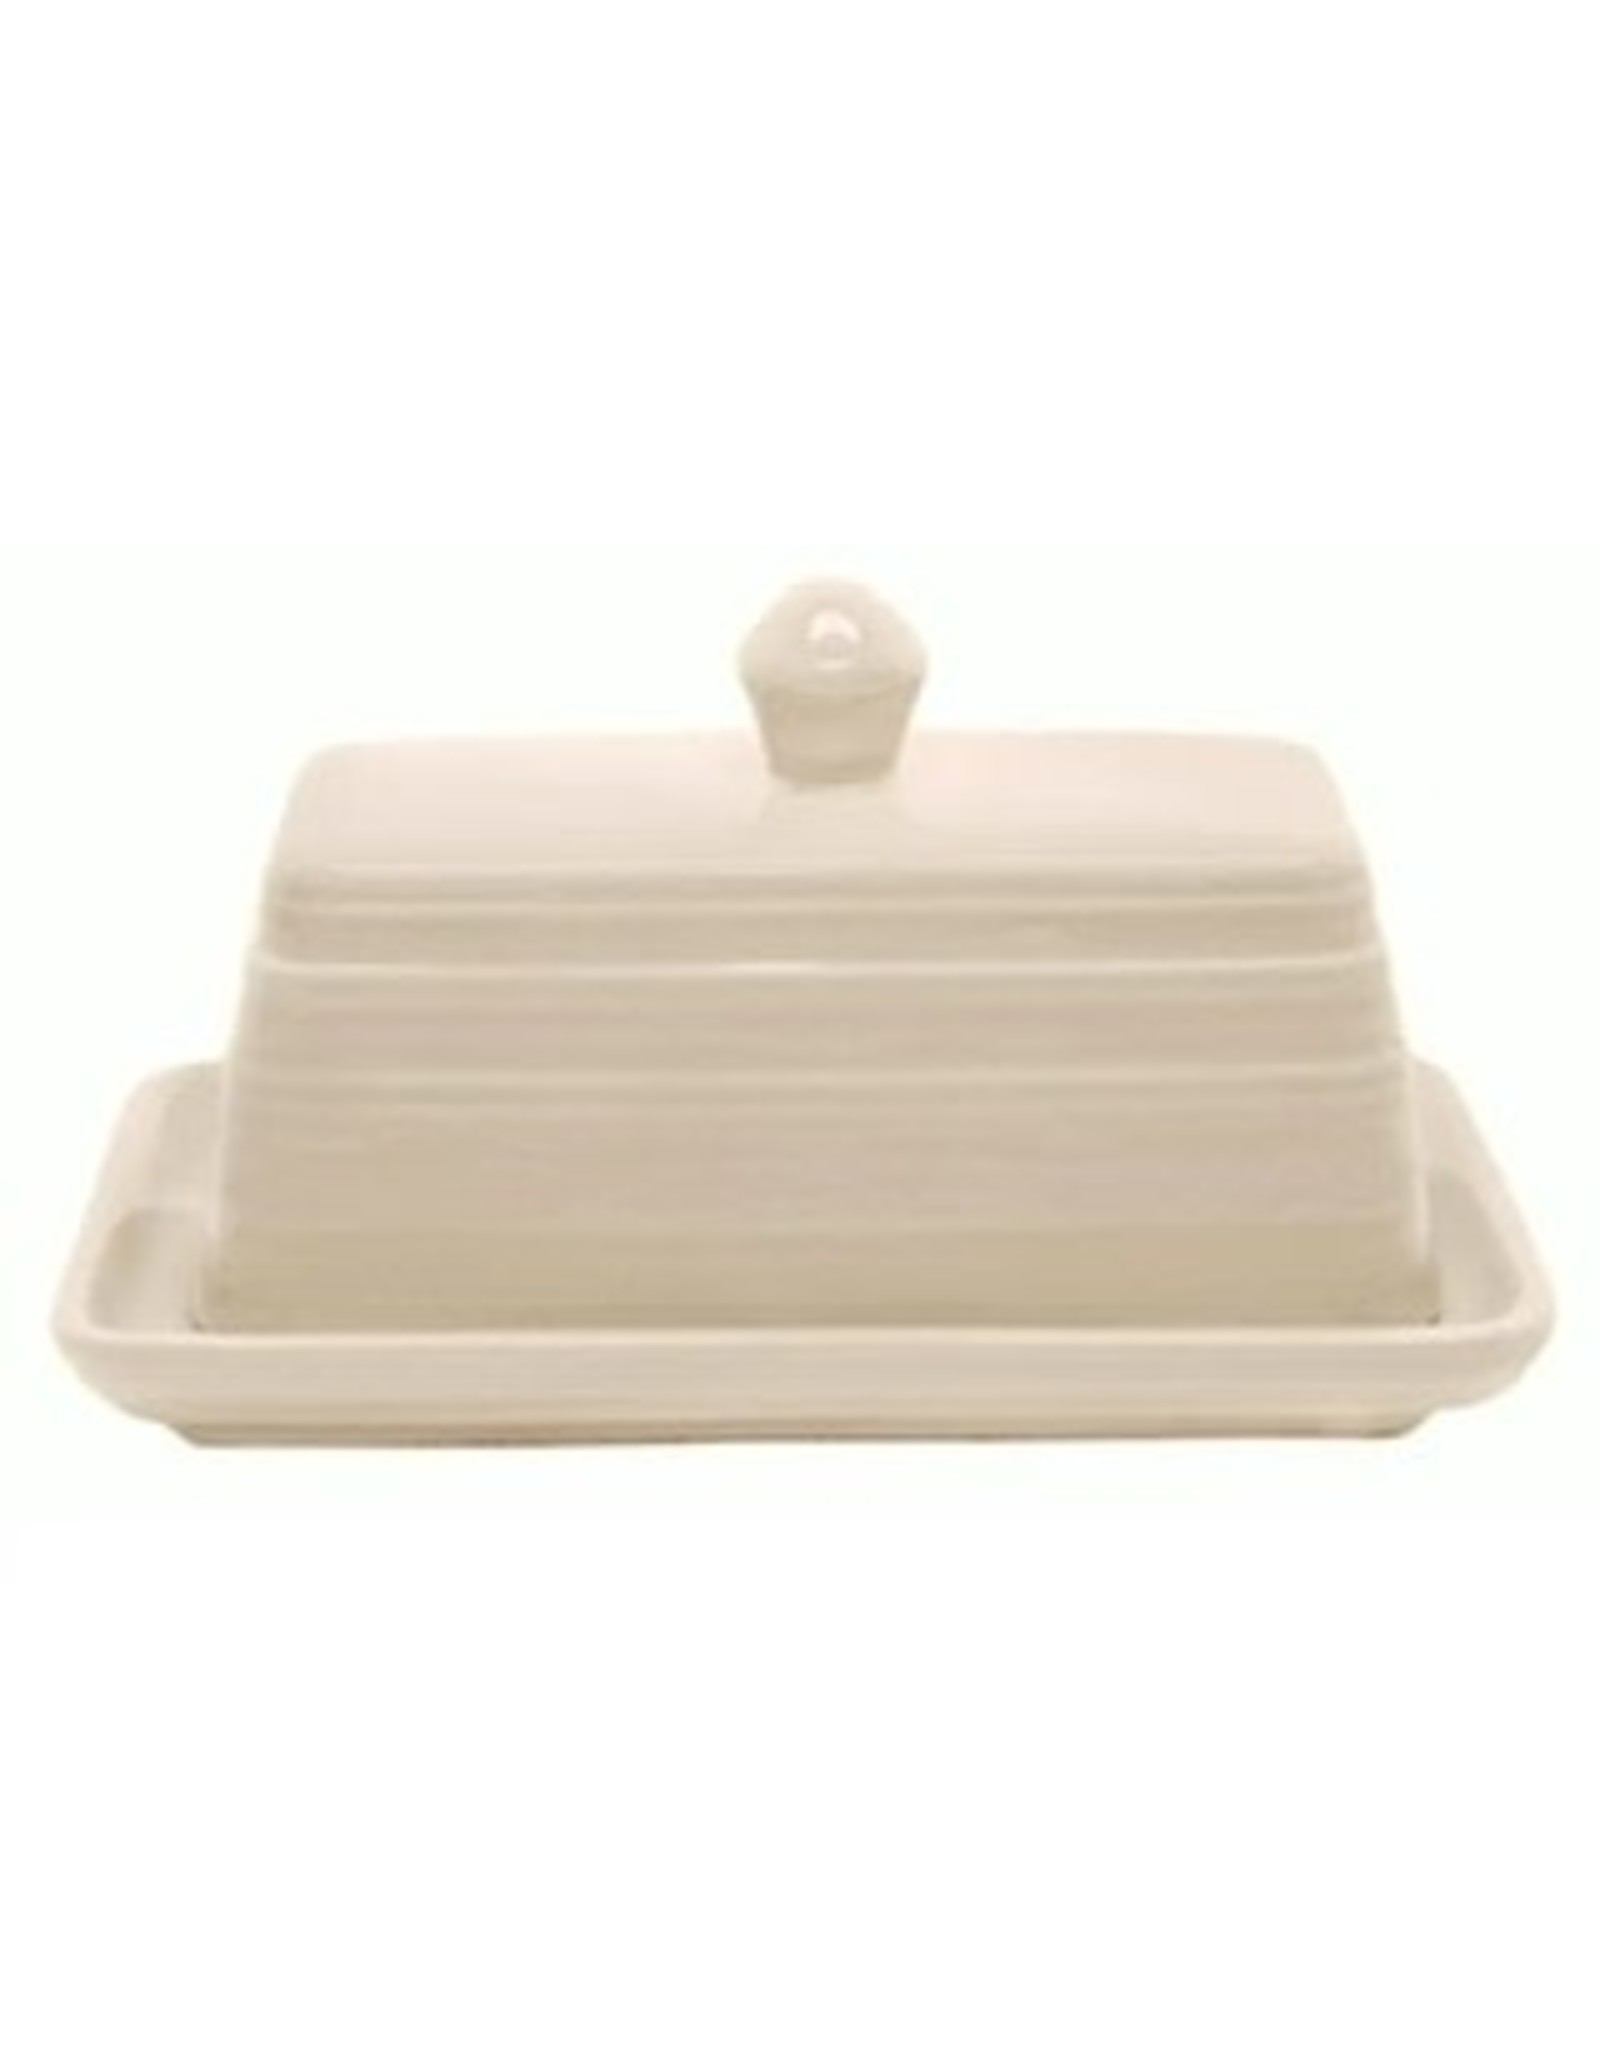 Ceramic Covered Butter Dish